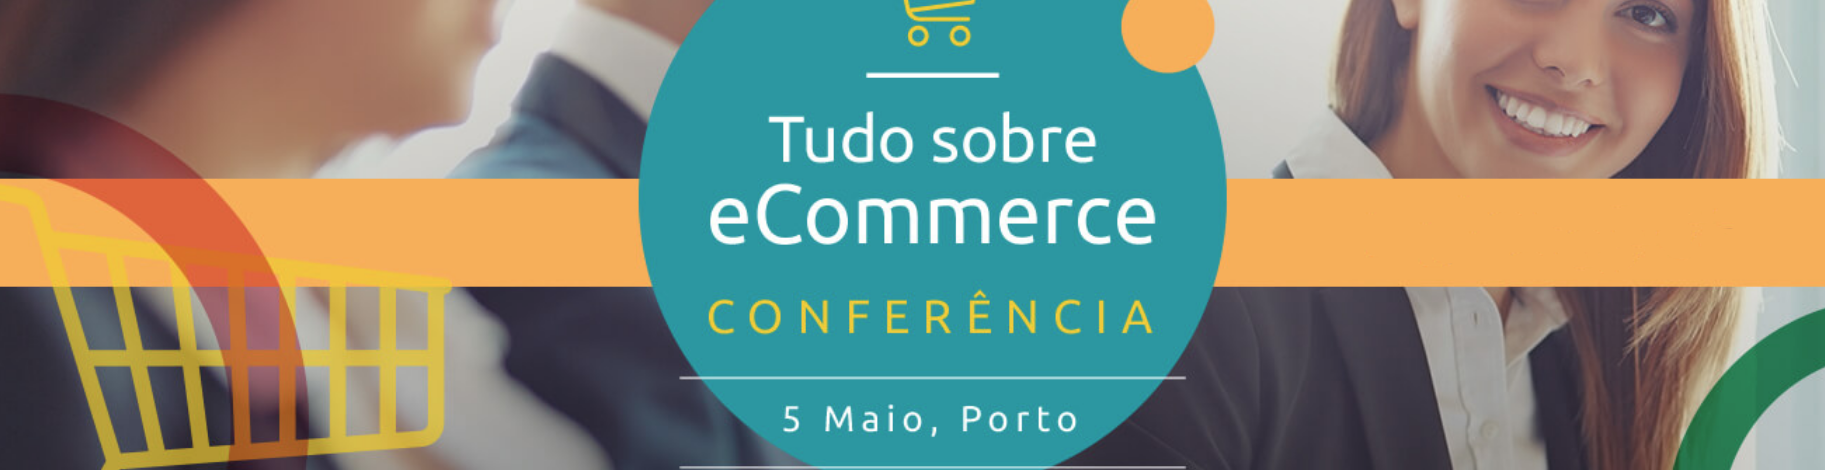 ecommerce, tudo sobre ecommerce, content marketing